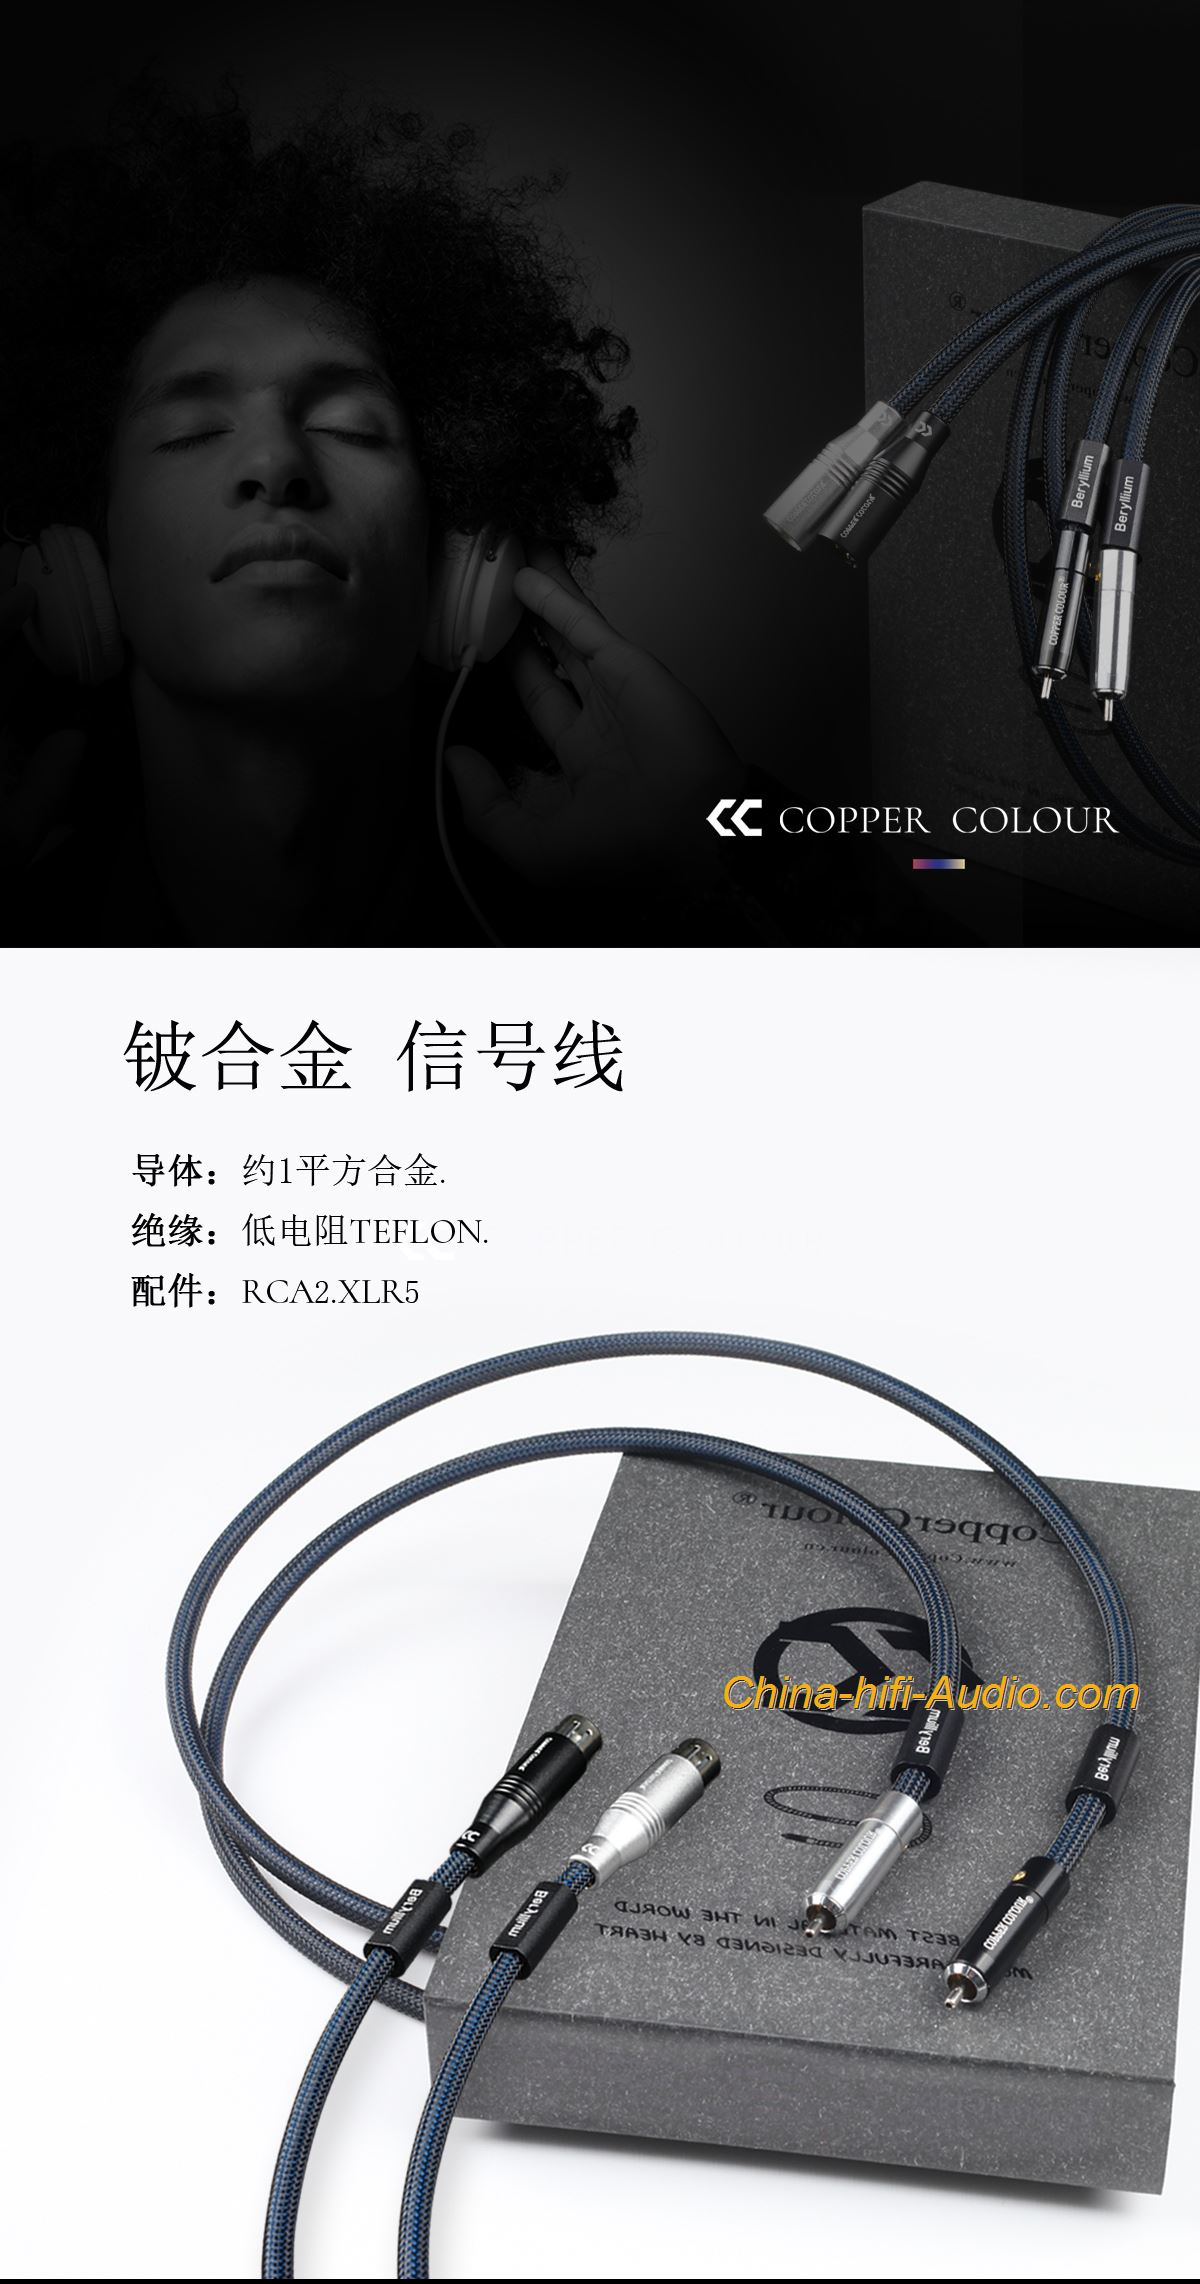 Coppercolor Cc Copper Coax Be Rca Hifi Audio Cable Beryllium Alloy Coaxial To Pair Of Audiophile Interconnect Cables 2 Plugs 1 Meter 50 Meters Length Can Customized If The You Need Is Not Shown